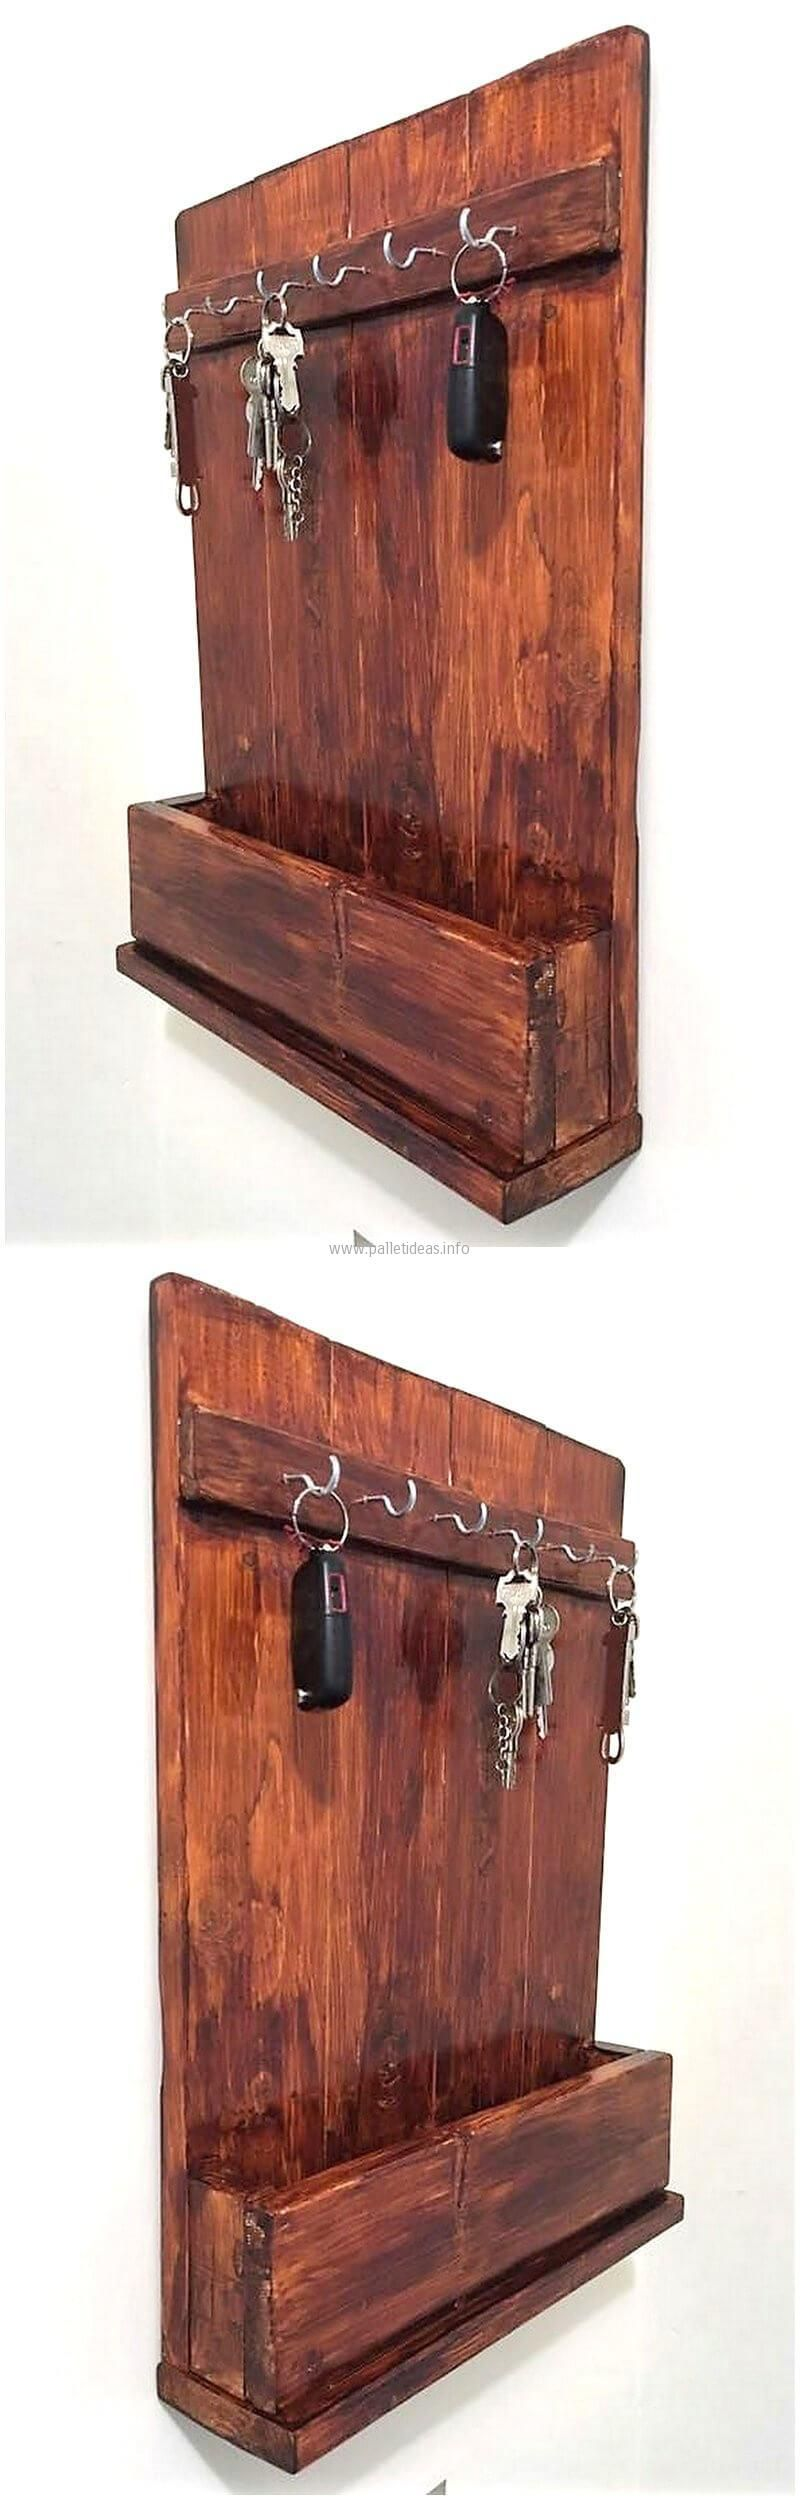 Wood Pallet Keyholder Rack Projects